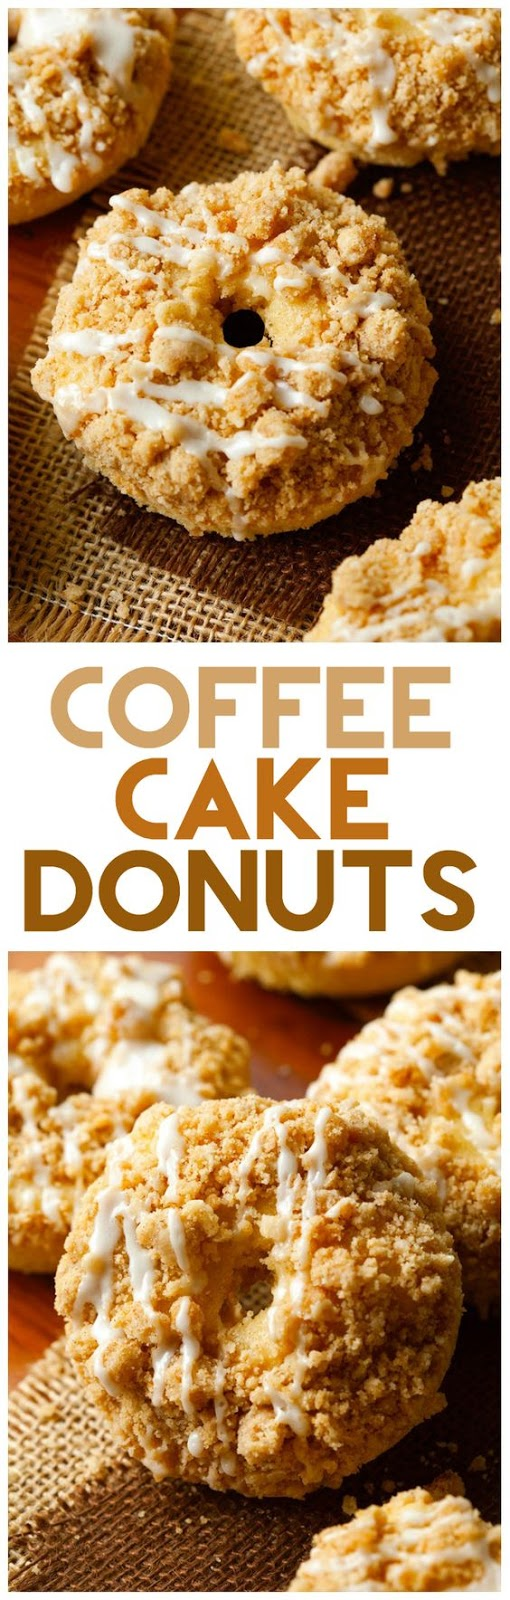 Coffee Cake Donuts #Coffee #Cake #Donuts #Coffee #Cake #Donuts #Healthy #Yummy